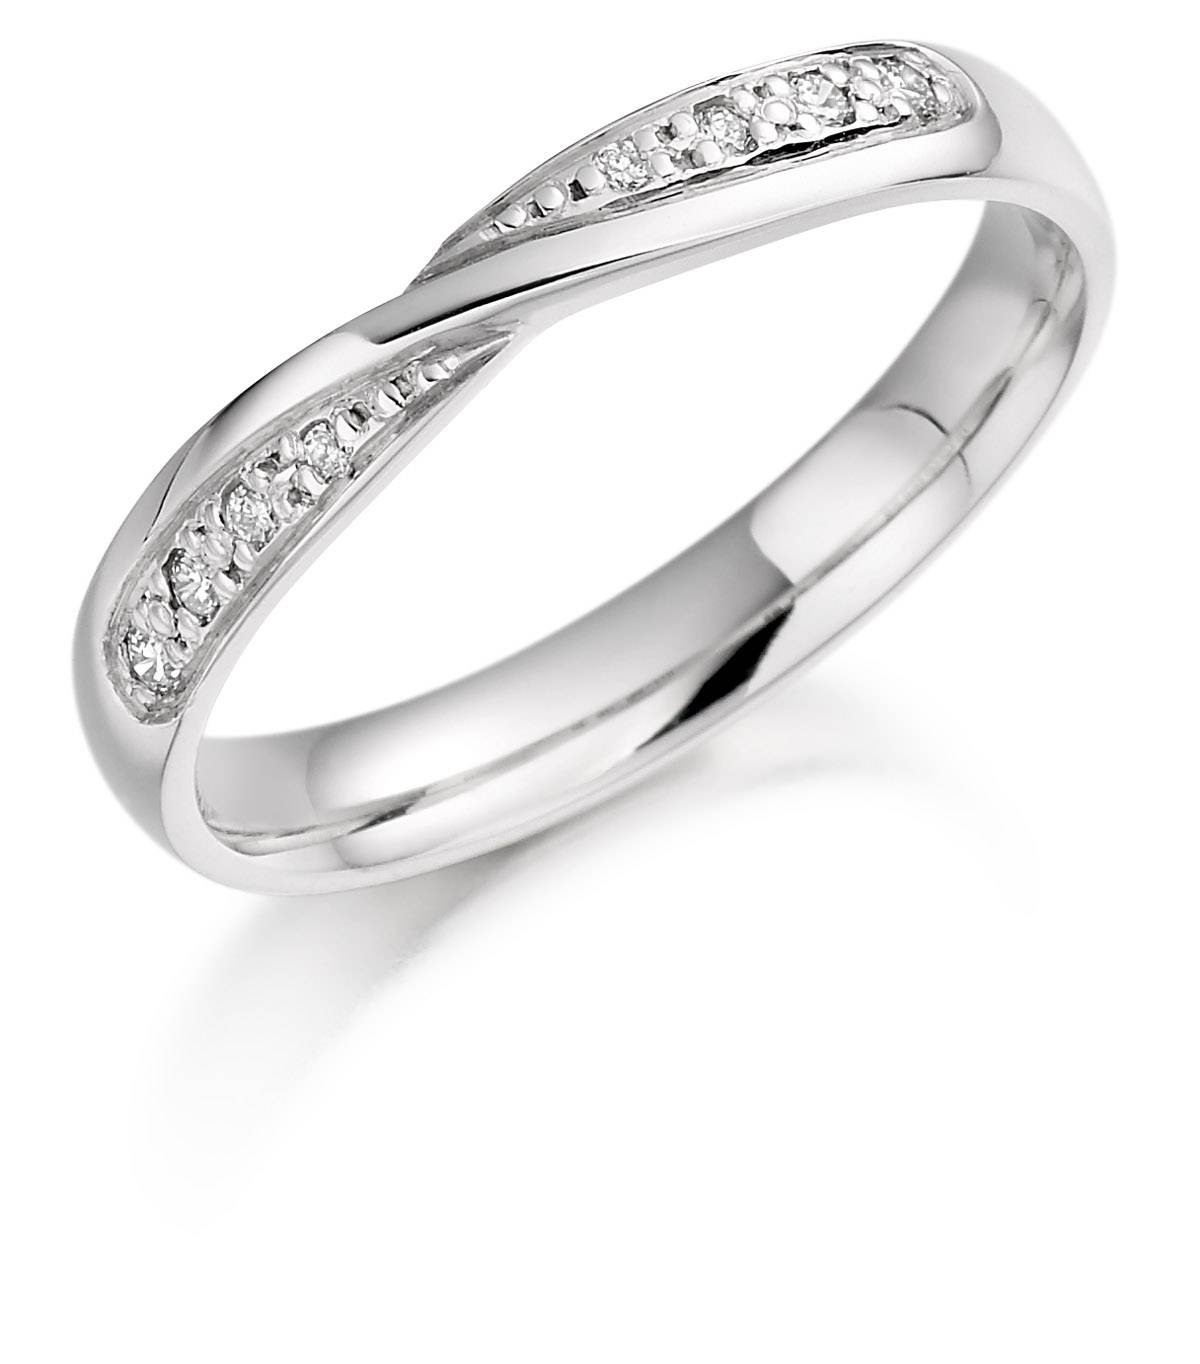 Wedding Bands – Sparkle Diamond Wedding Band Inside Twisted Wedding Bands (View 12 of 15)